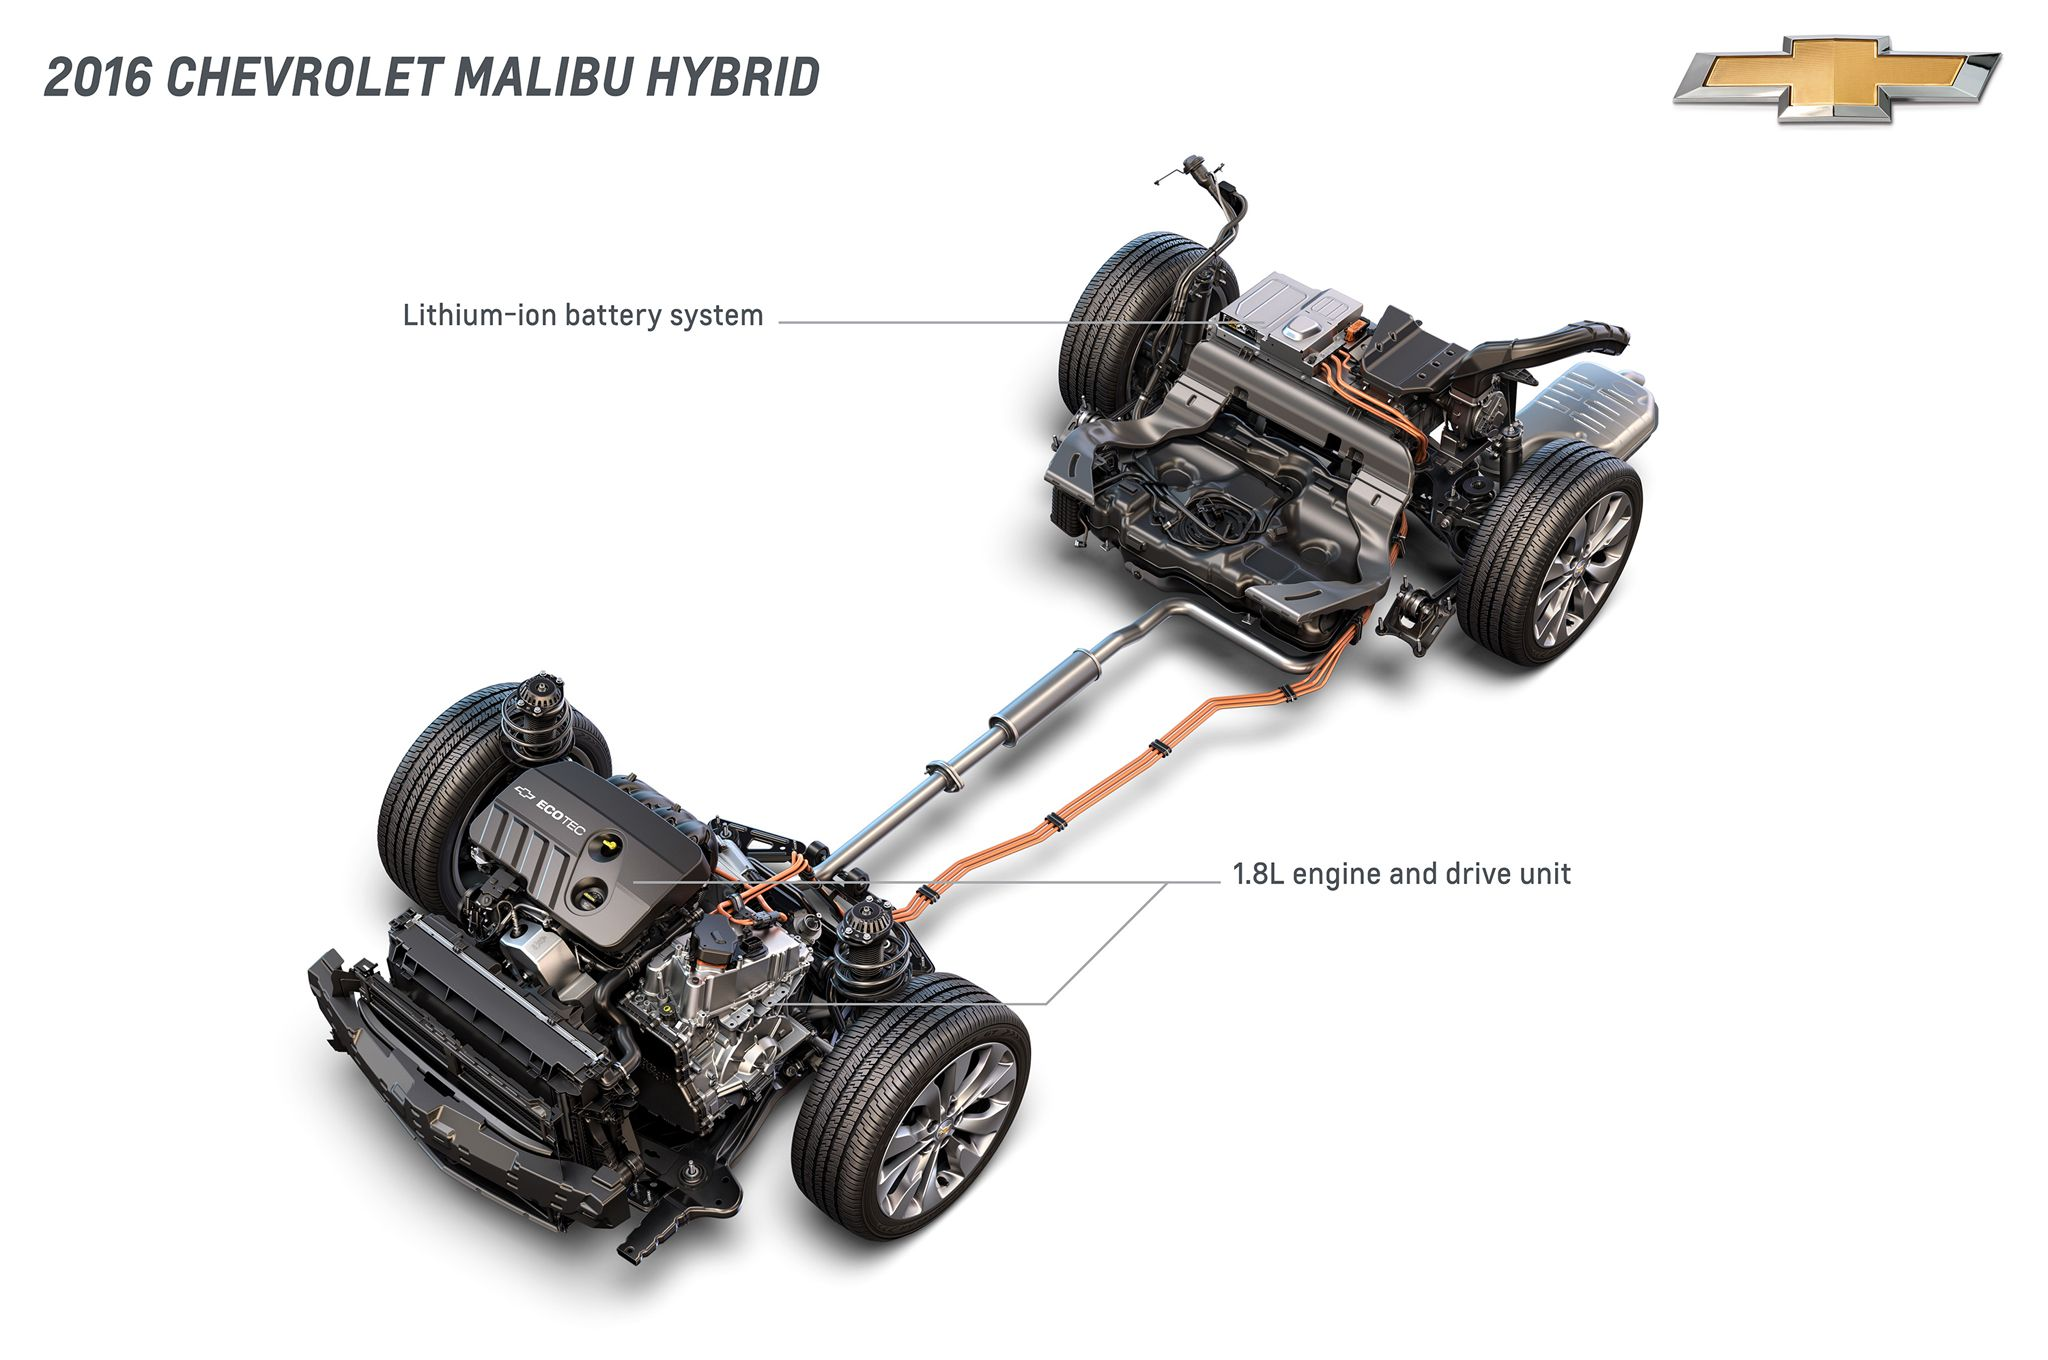 Malibu Car Engine Diagram Trusted Wiring Chevette 2016 Chevrolet Hybrid Comes To New York Estimated At 45 Mpg